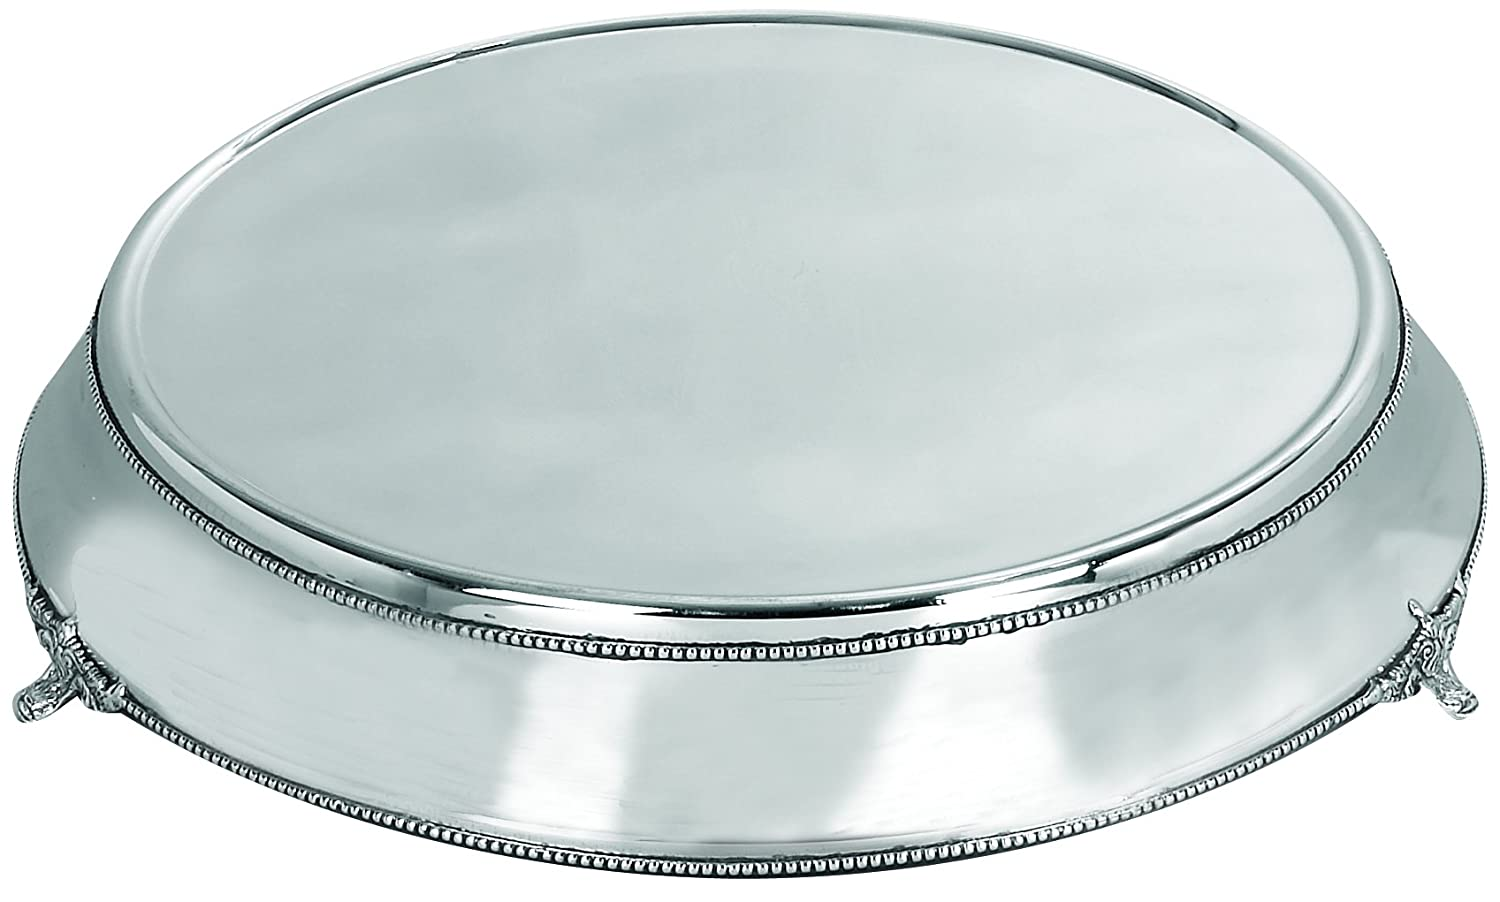 Deco 79 Stainless Steel Cake Plate with Silver Color by Deco 79   B002PLOL84